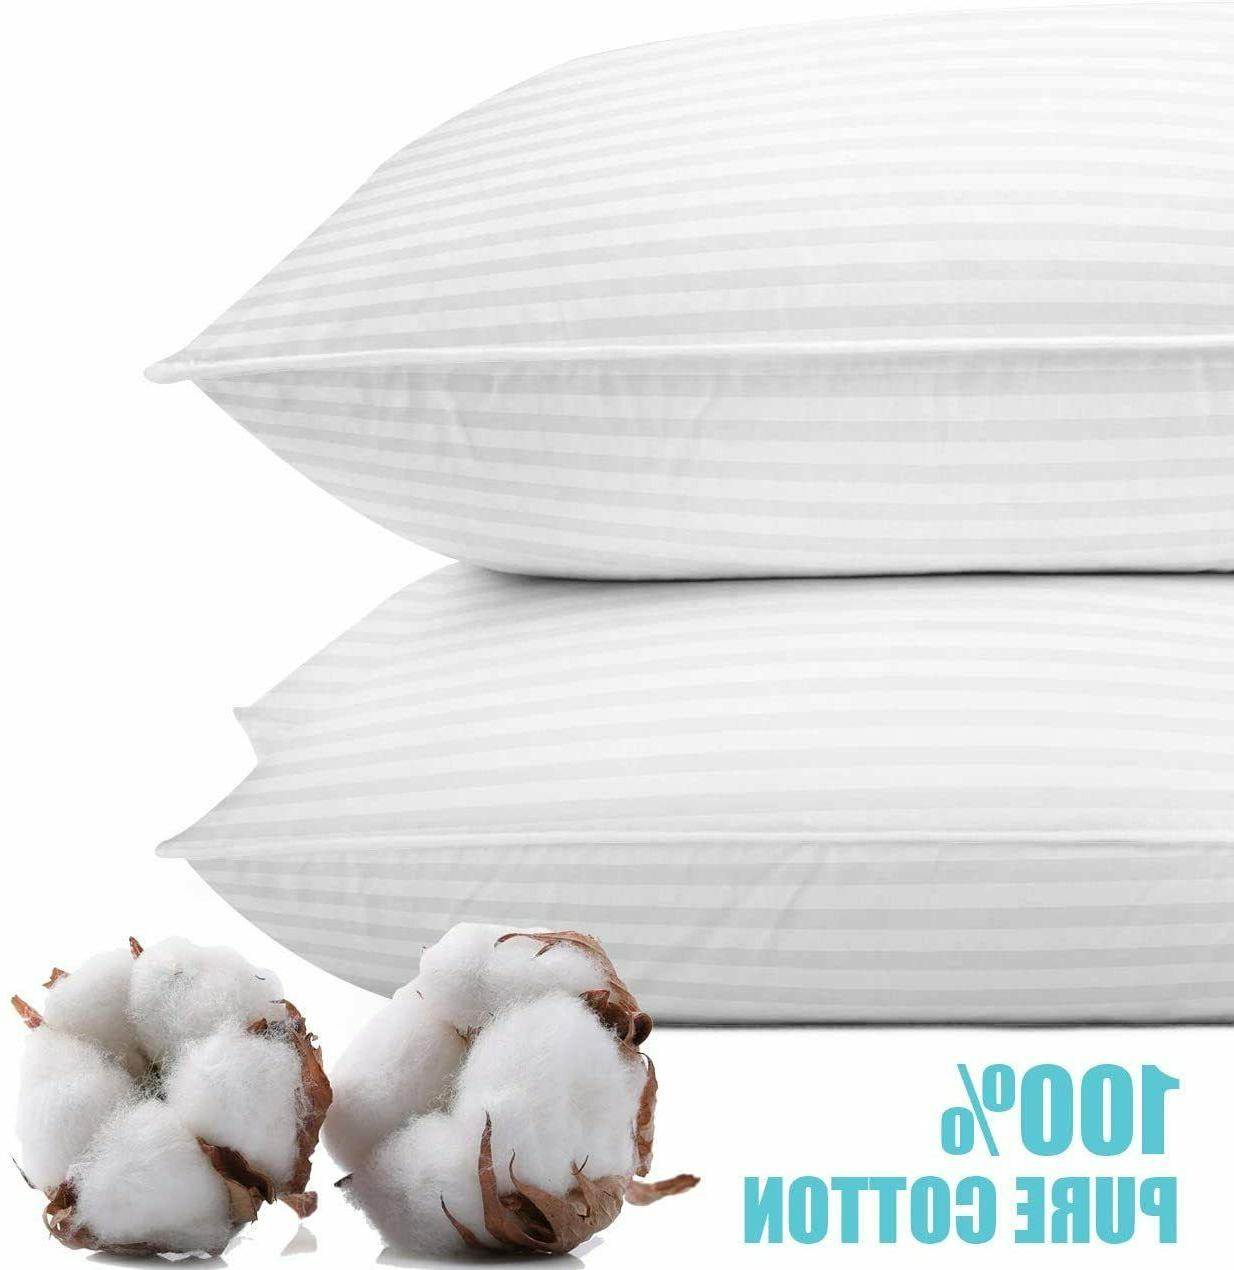 Ultra Soft Hotel Quality Pillows of Size